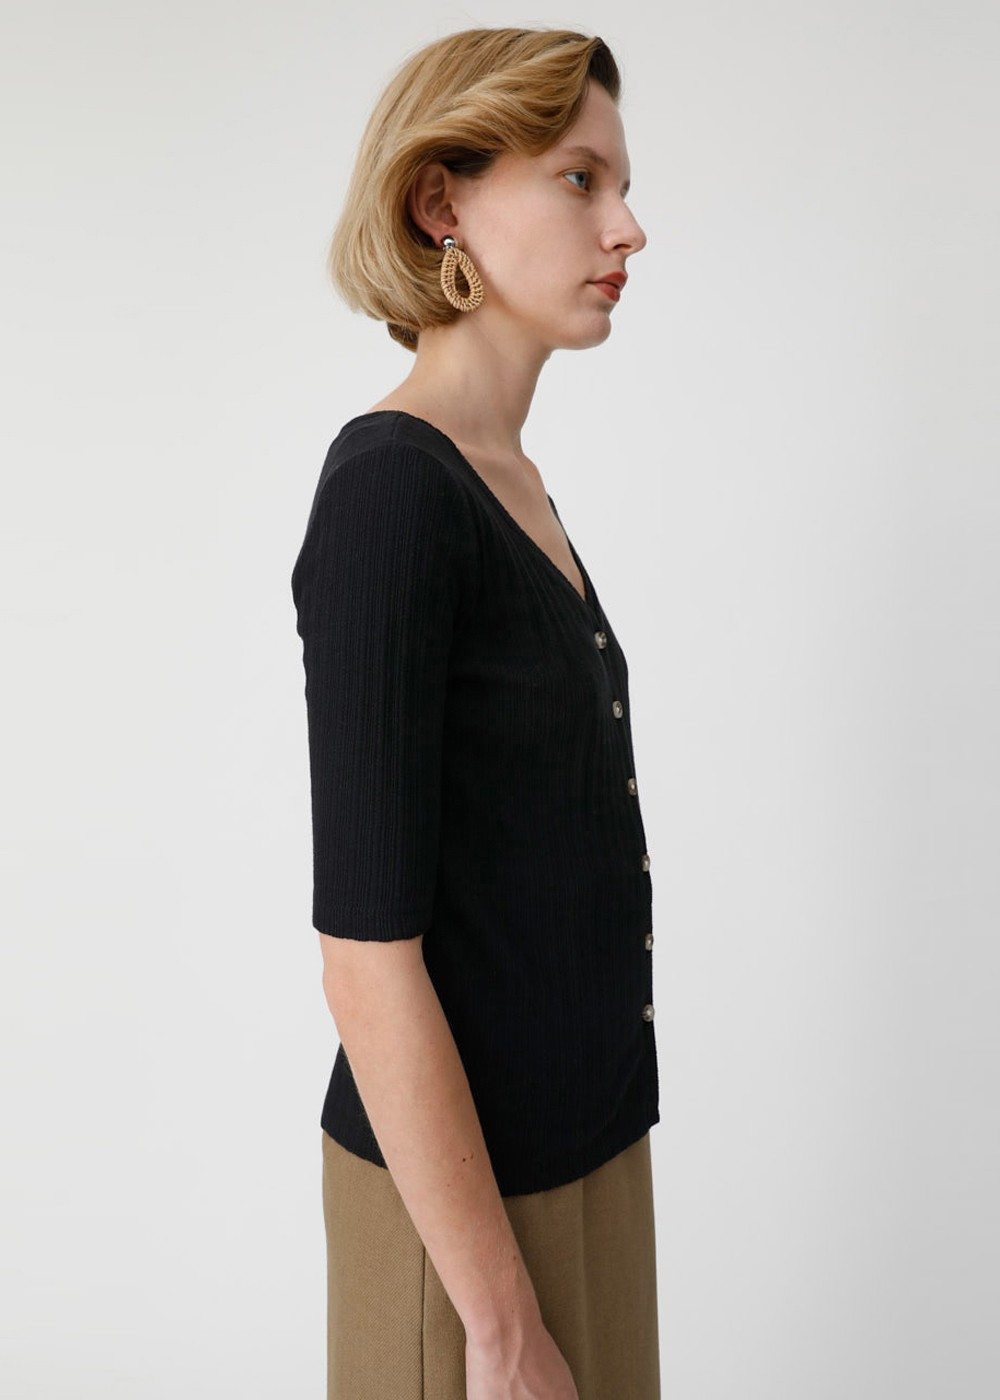 【最大70%OFF】WIDE NECK 2WAY TOP|BLK|カットソー|MOUSSY